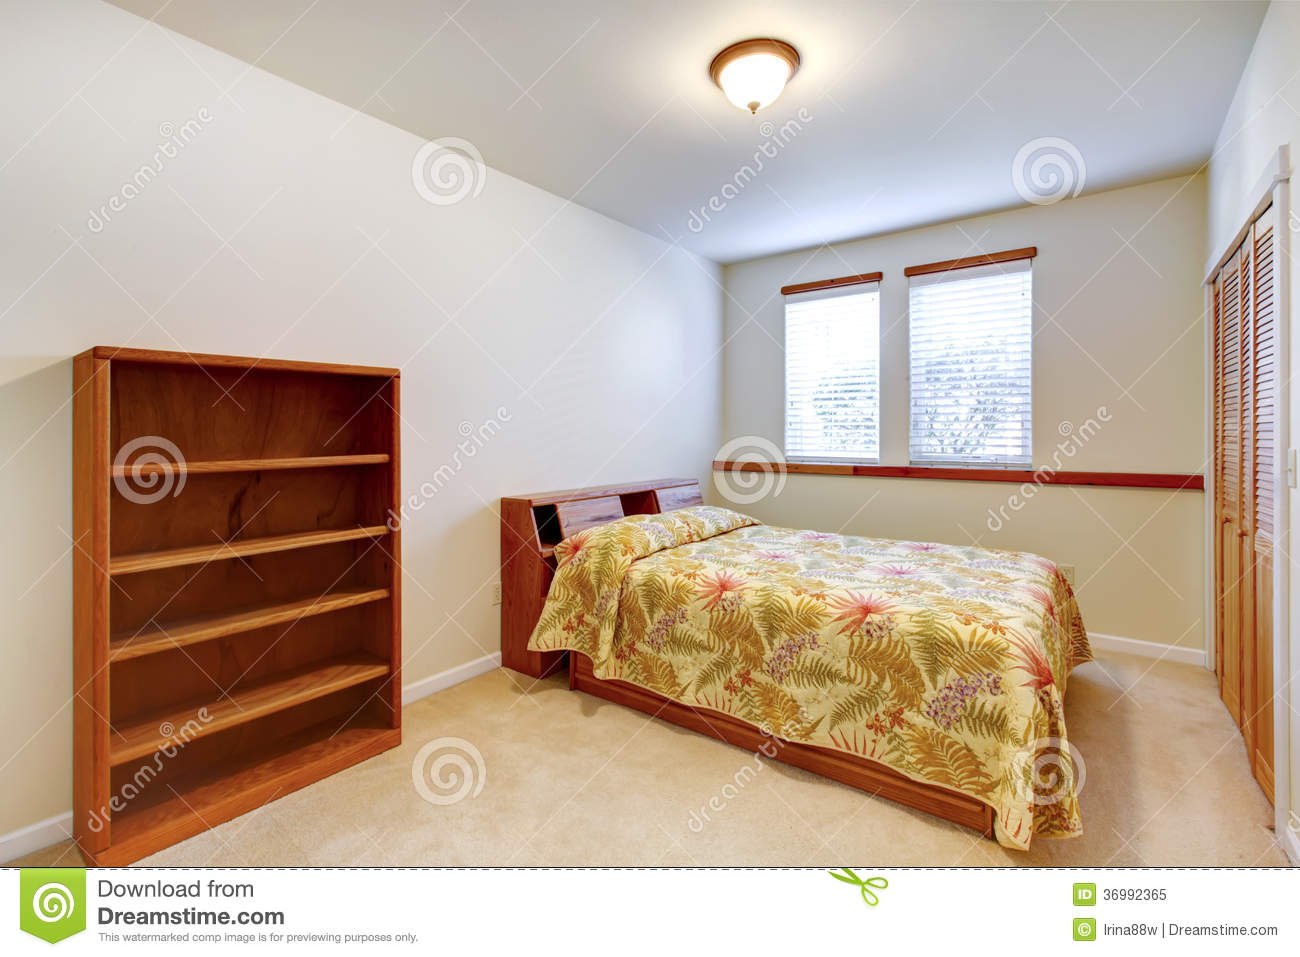 Warm simple bedroom with wooden furniture stock image for Dormitorio simple